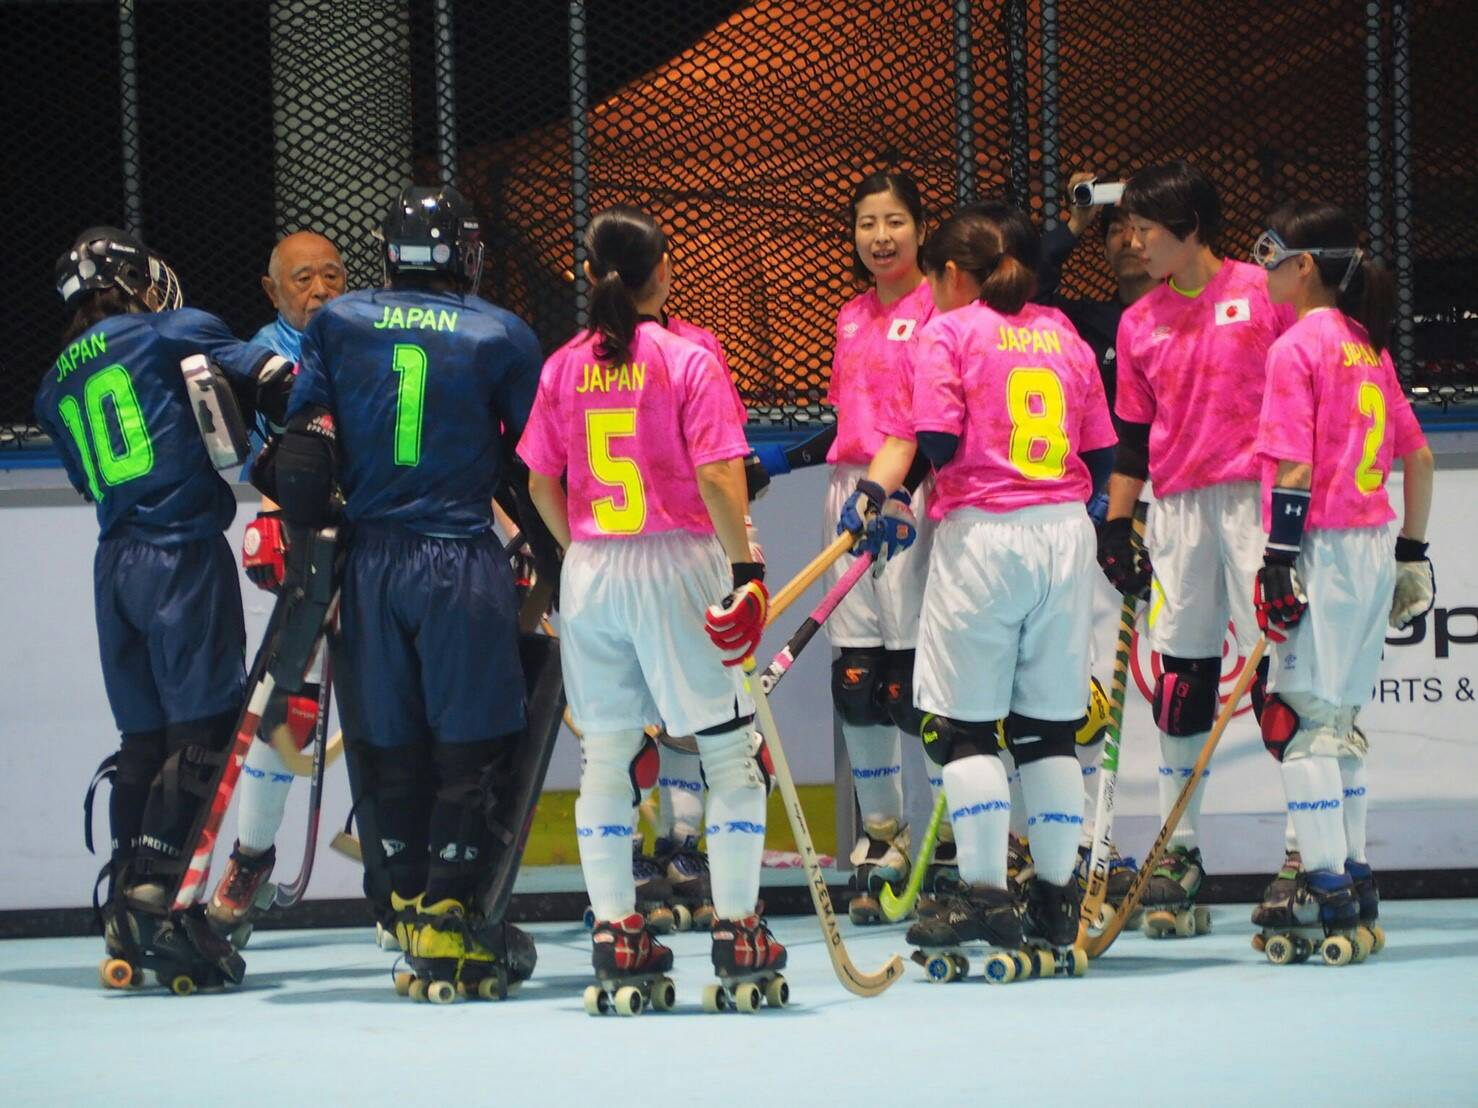 WORLD SKATE ASIA 18th ASIA-OCEANIA RINK HOCKEY CHAMPIONSHIP